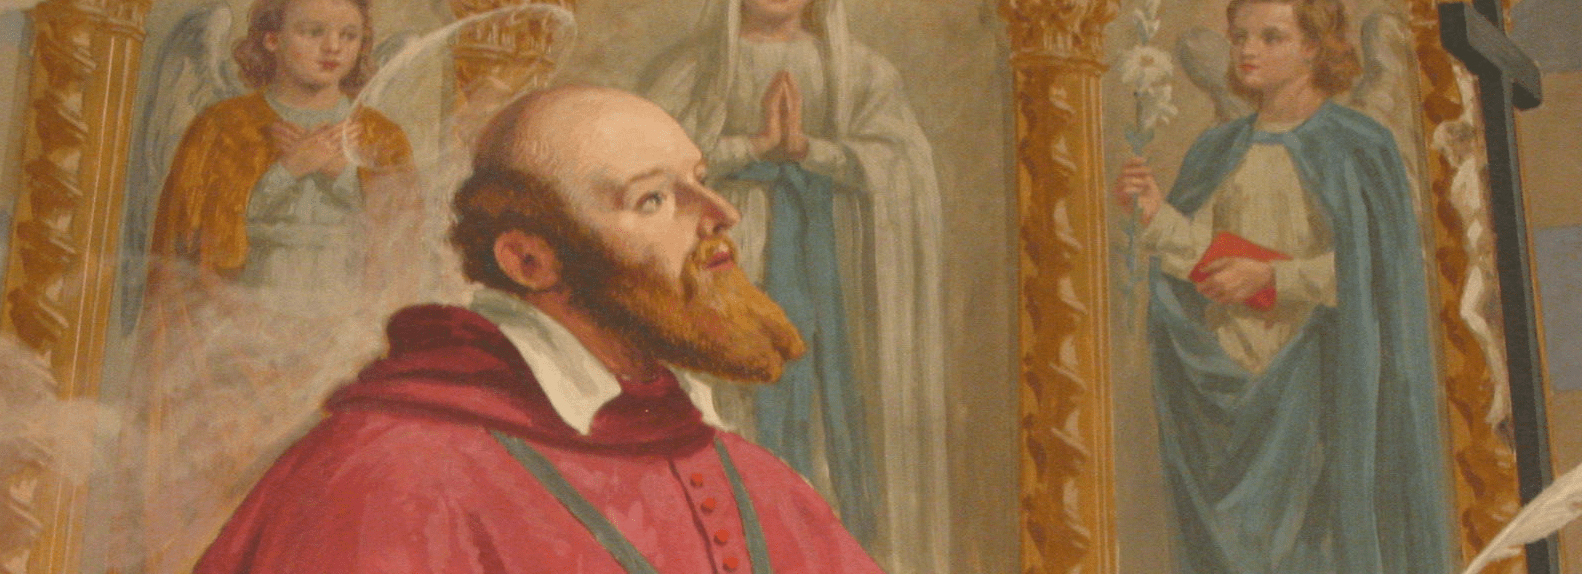 St. Francis de Sales: the Pope is the Guarantor of Orthodoxy & Unity